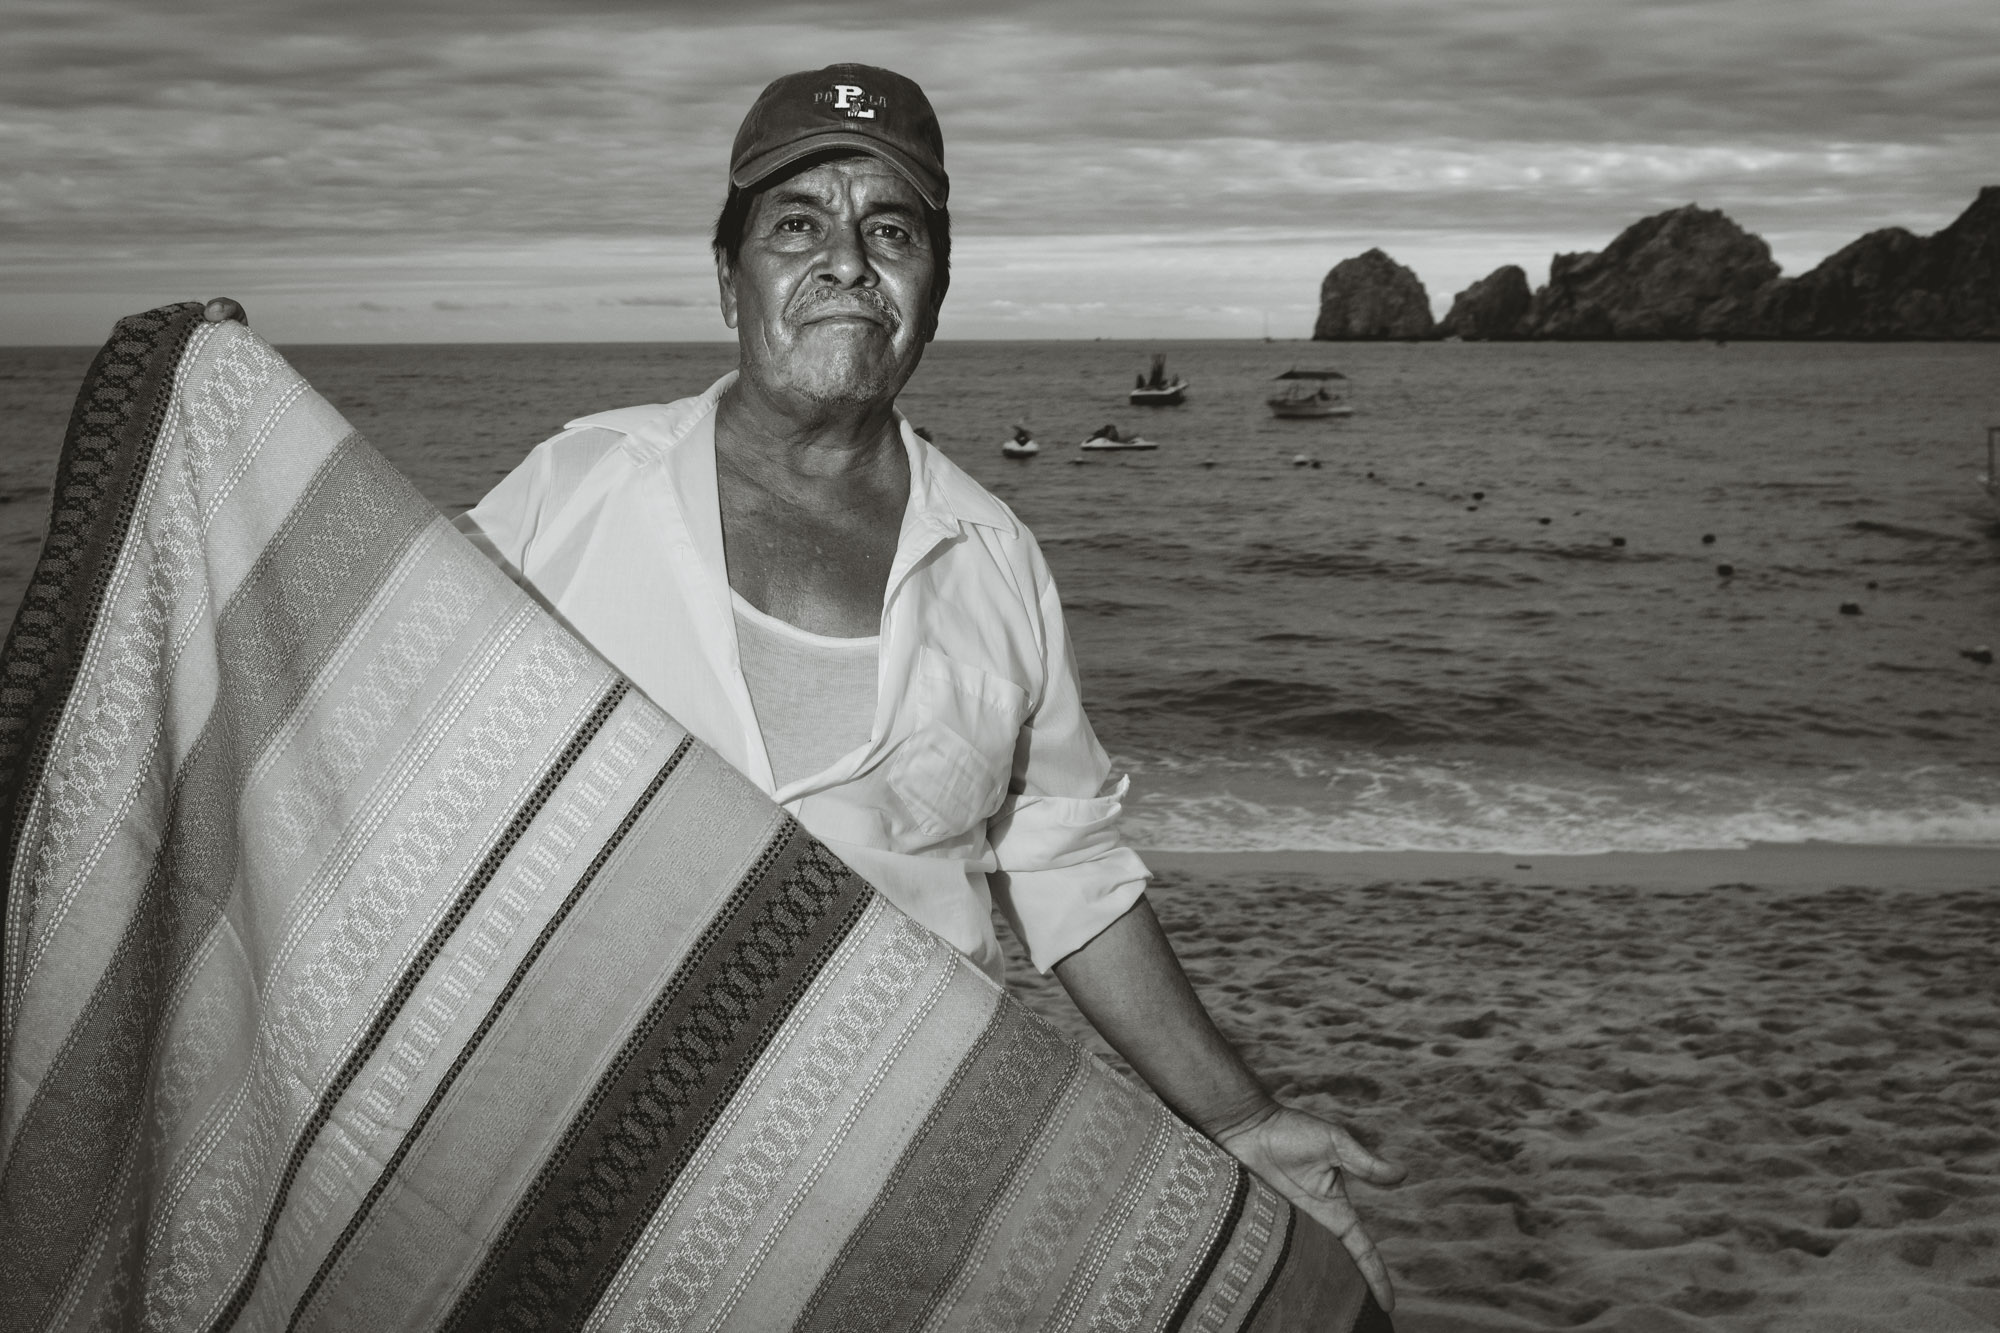 Portrait of a blanket vendor on the beach in cabo san lucas